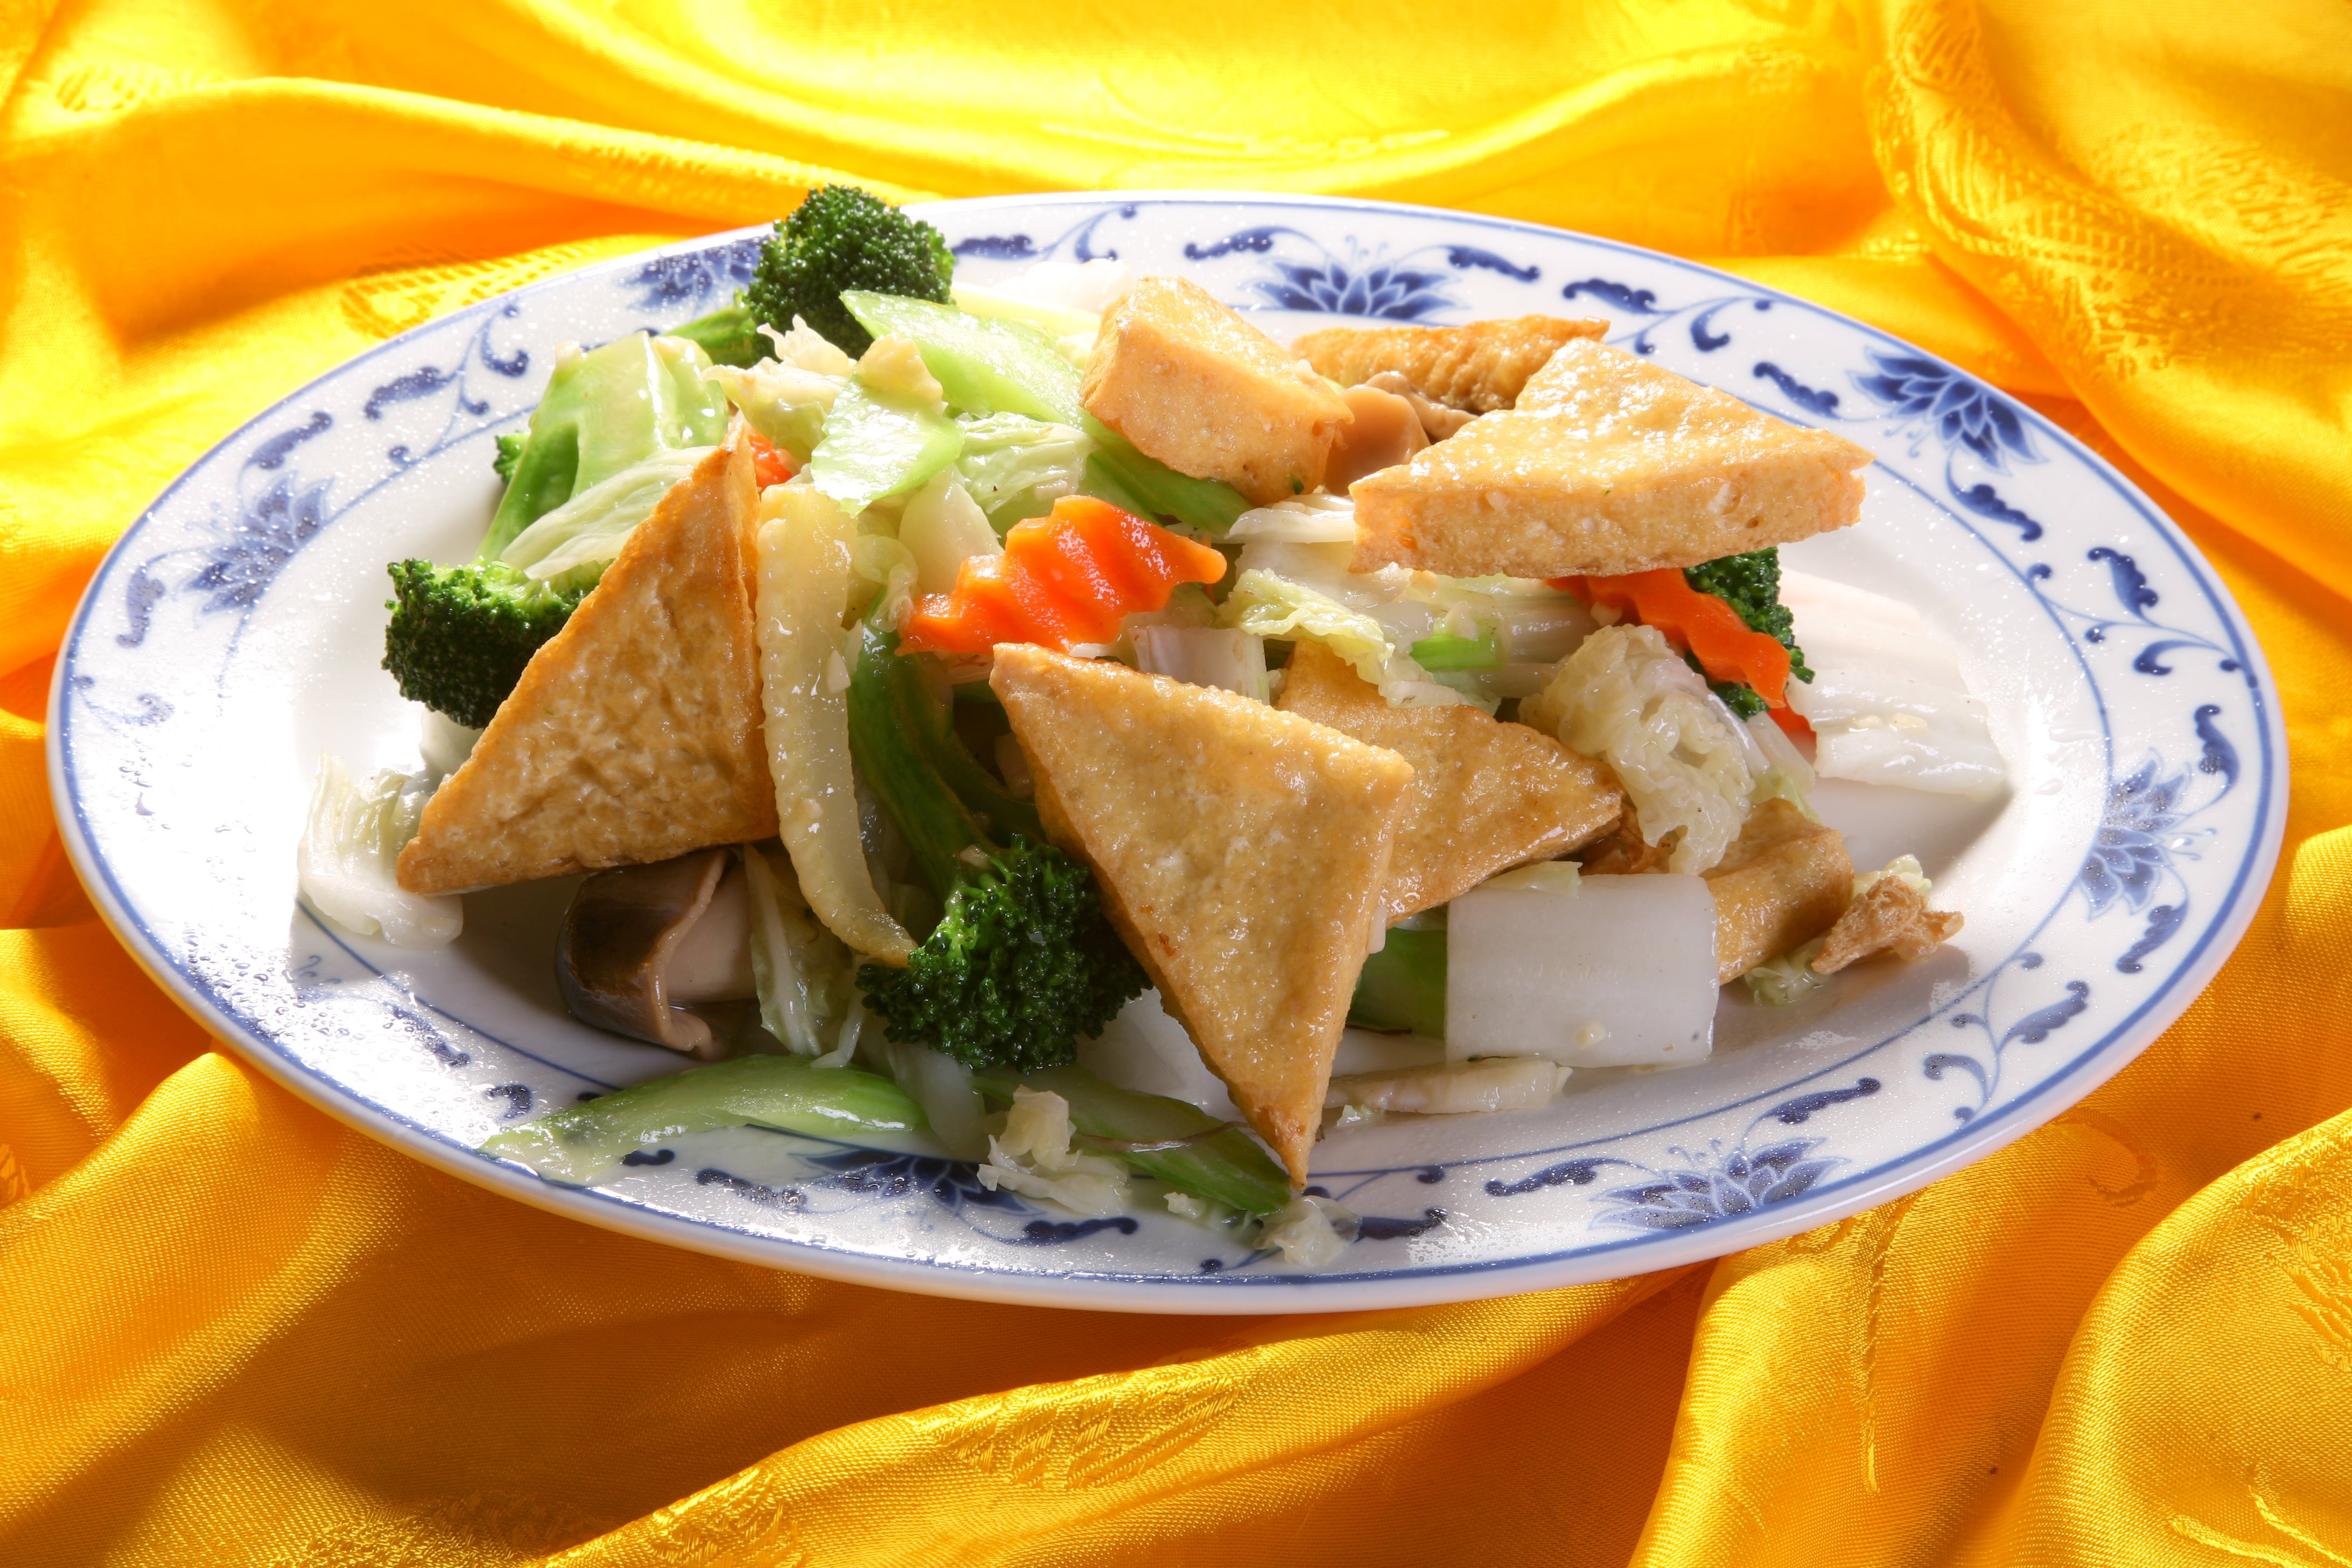 Tofu fries with stir-fried vegetables